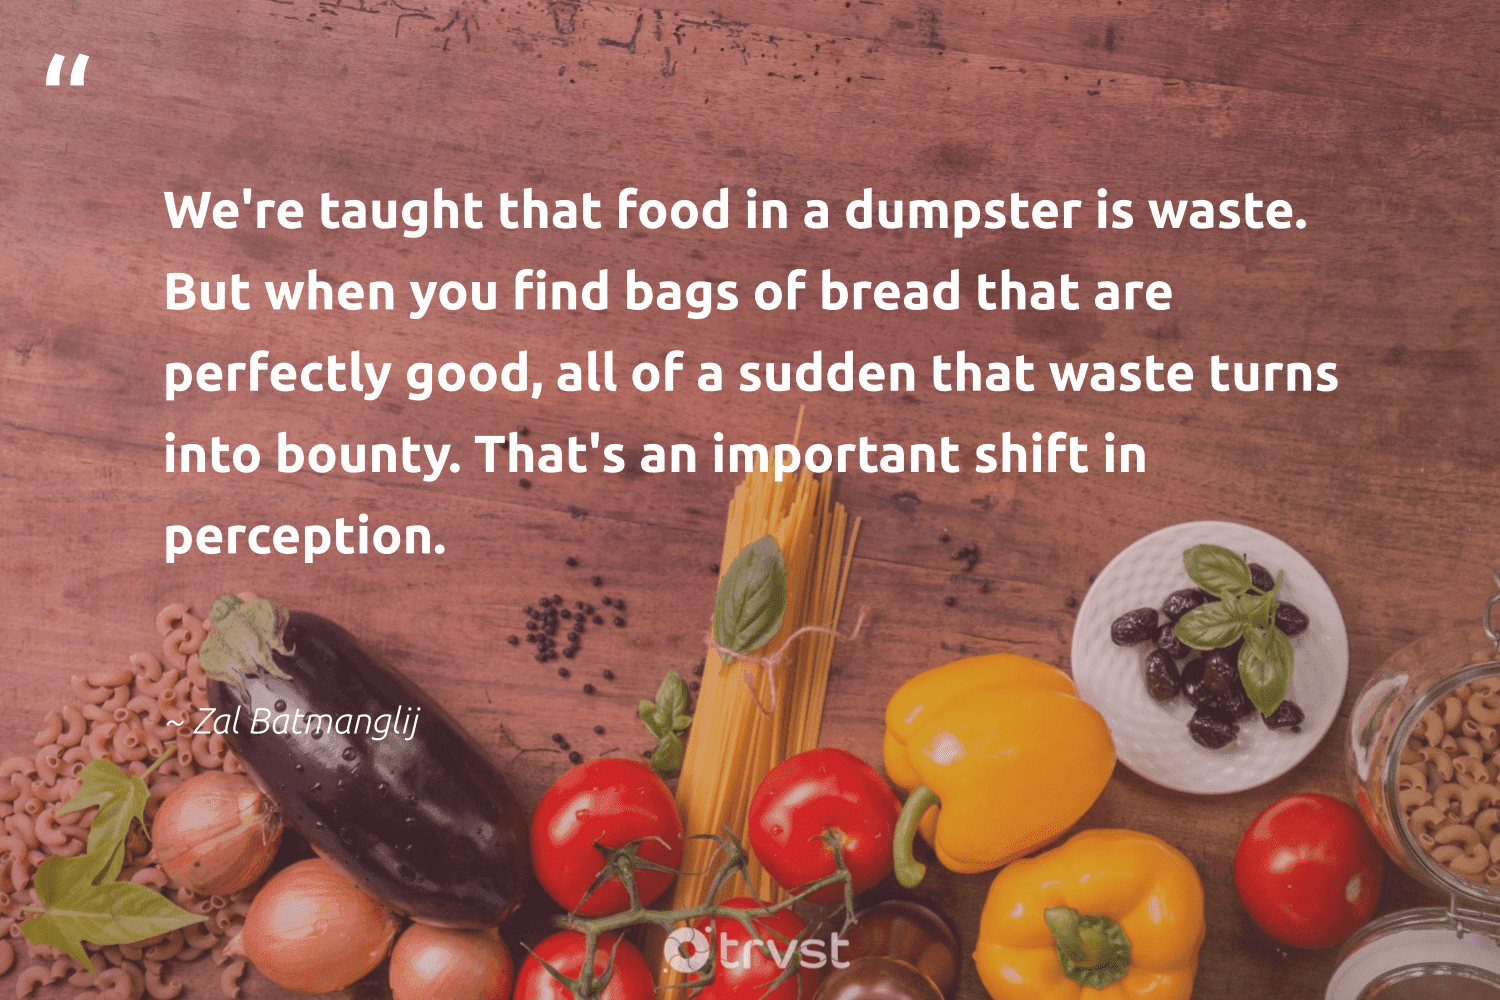 """""""We're taught that food in a dumpster is waste. But when you find bags of bread that are perfectly good, all of a sudden that waste turns into bounty. That's an important shift in perception.""""  - Zal Batmanglij #trvst #quotes #waste #food #foodforthepoor #noplanetb #equalopportunity #changetheworld #hungry #ecoactivism #sustainablefutures #bethechange"""